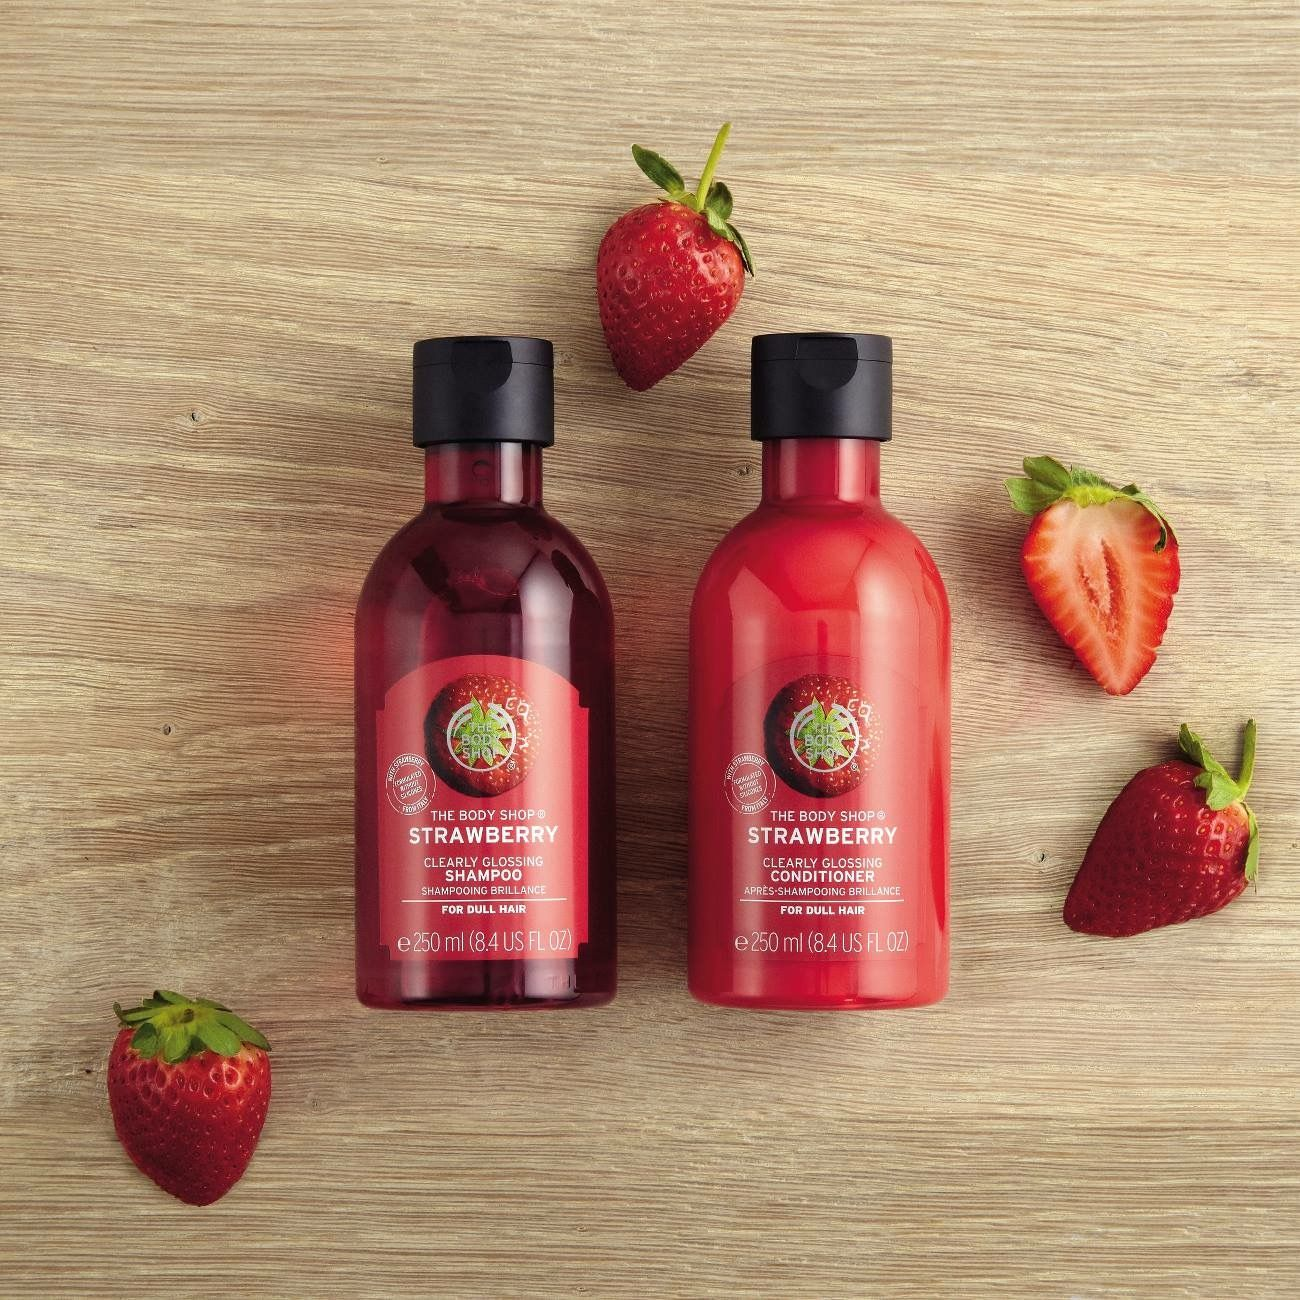 Pin by TRACYMIA on Body Shop The body shop, Strawberry